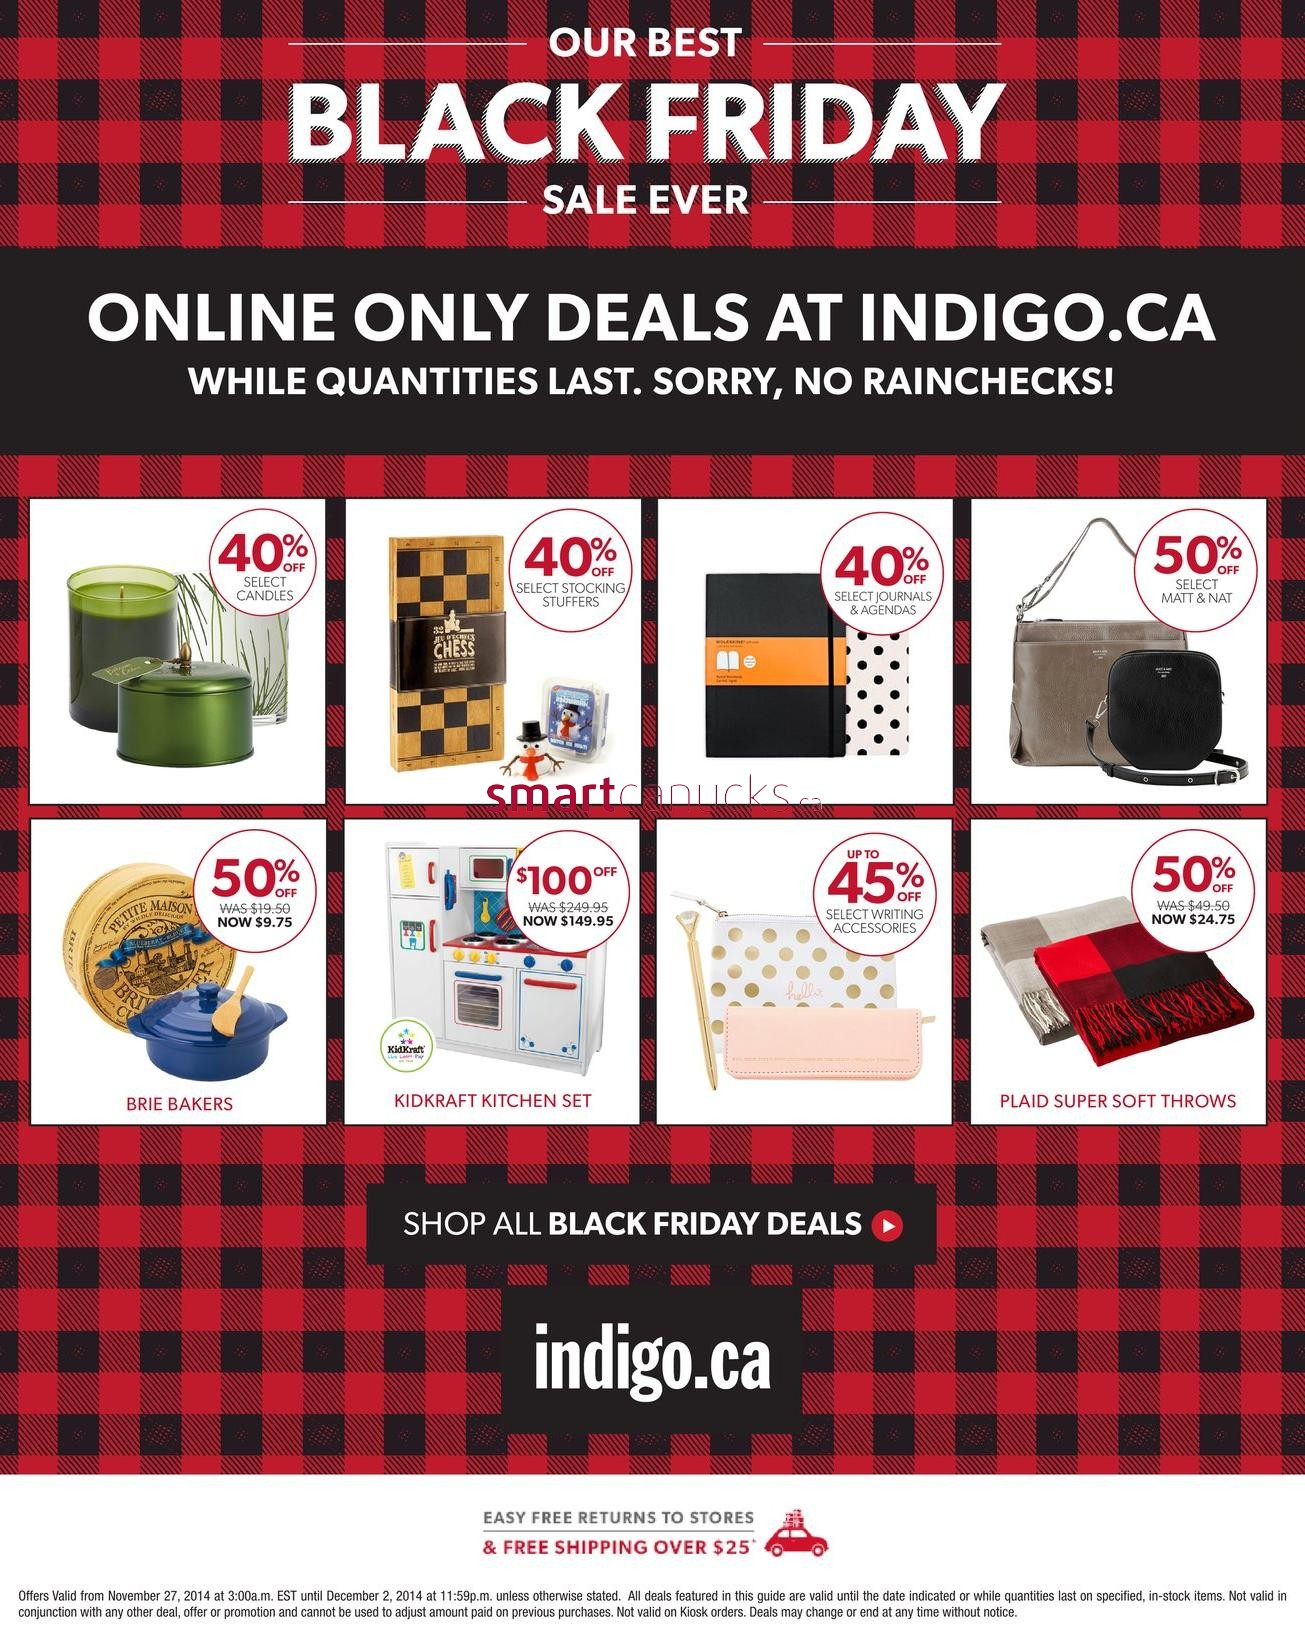 Luckily, every year there are amazing Black Friday deals Canada wide. This means you can put your passport away and indulge in a little Black Friday Canada shopping (or a lot). Start planning your holiday shopping today with Black Friday sales at Walmart.